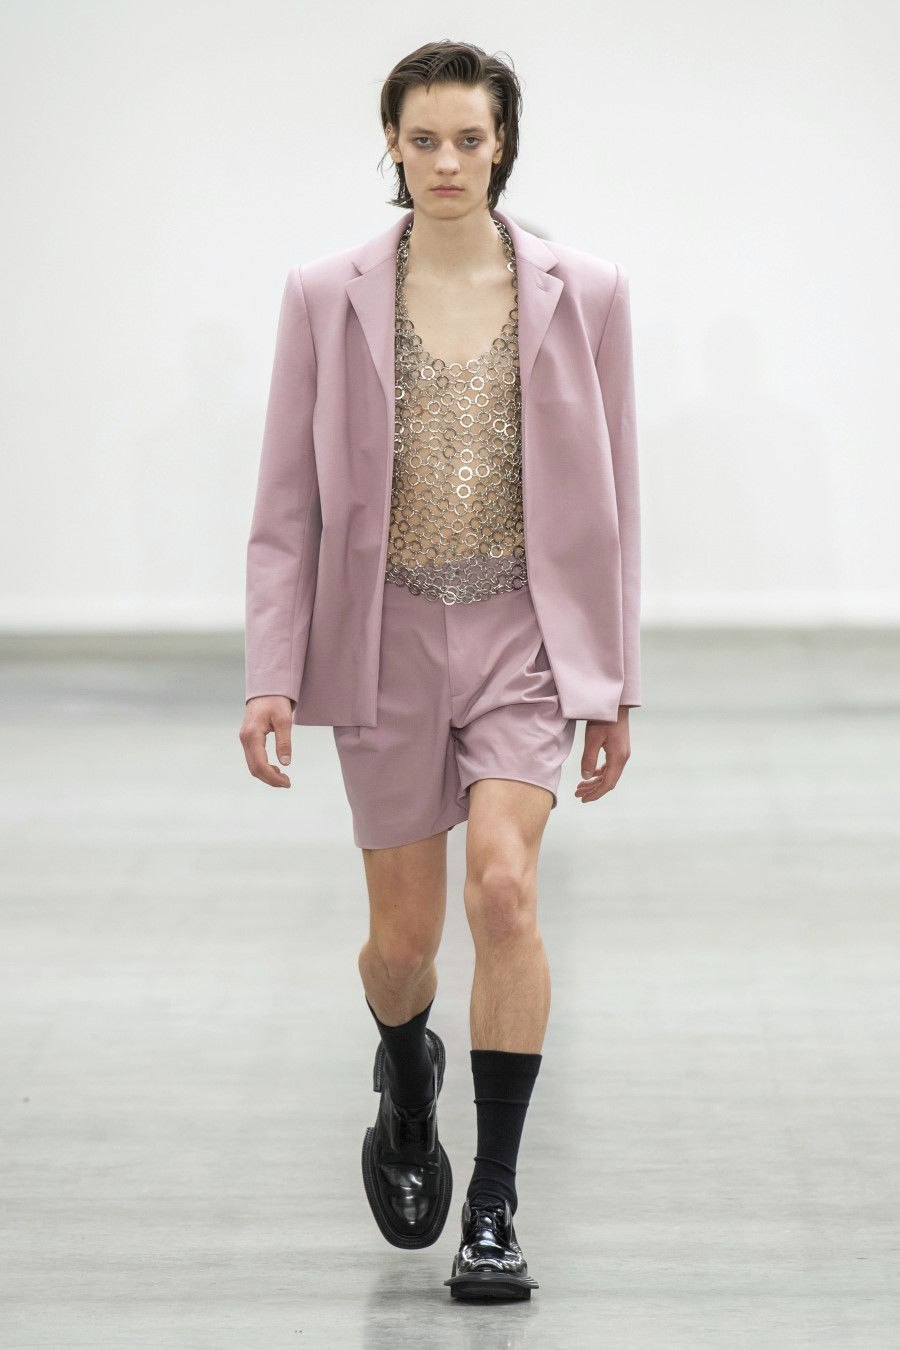 8ON8 - Printemps-Été 2020 - London Fashion Week Men's